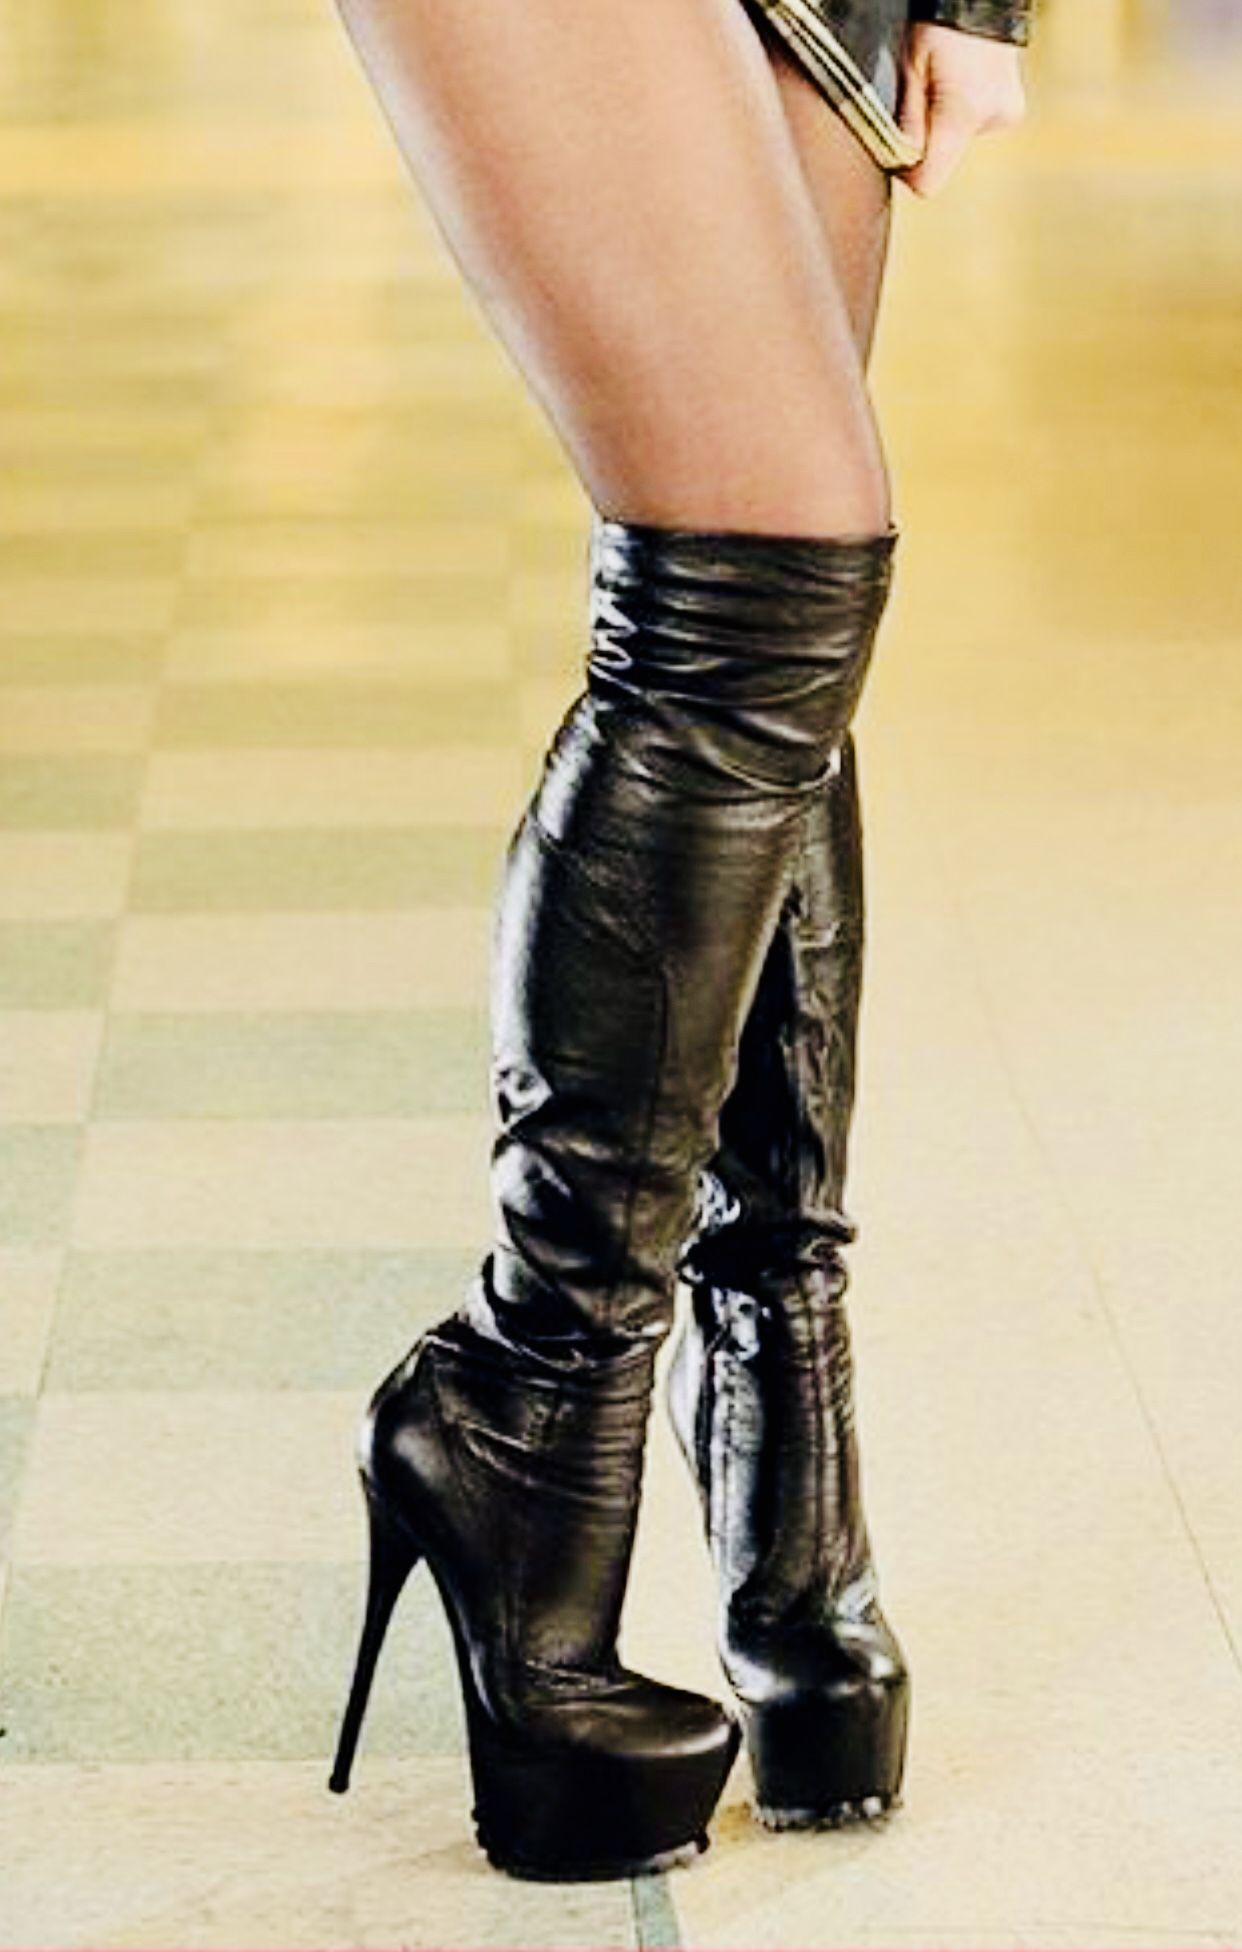 Pin by lasse on High Boots 2 | High heel shoe boots, Pretty